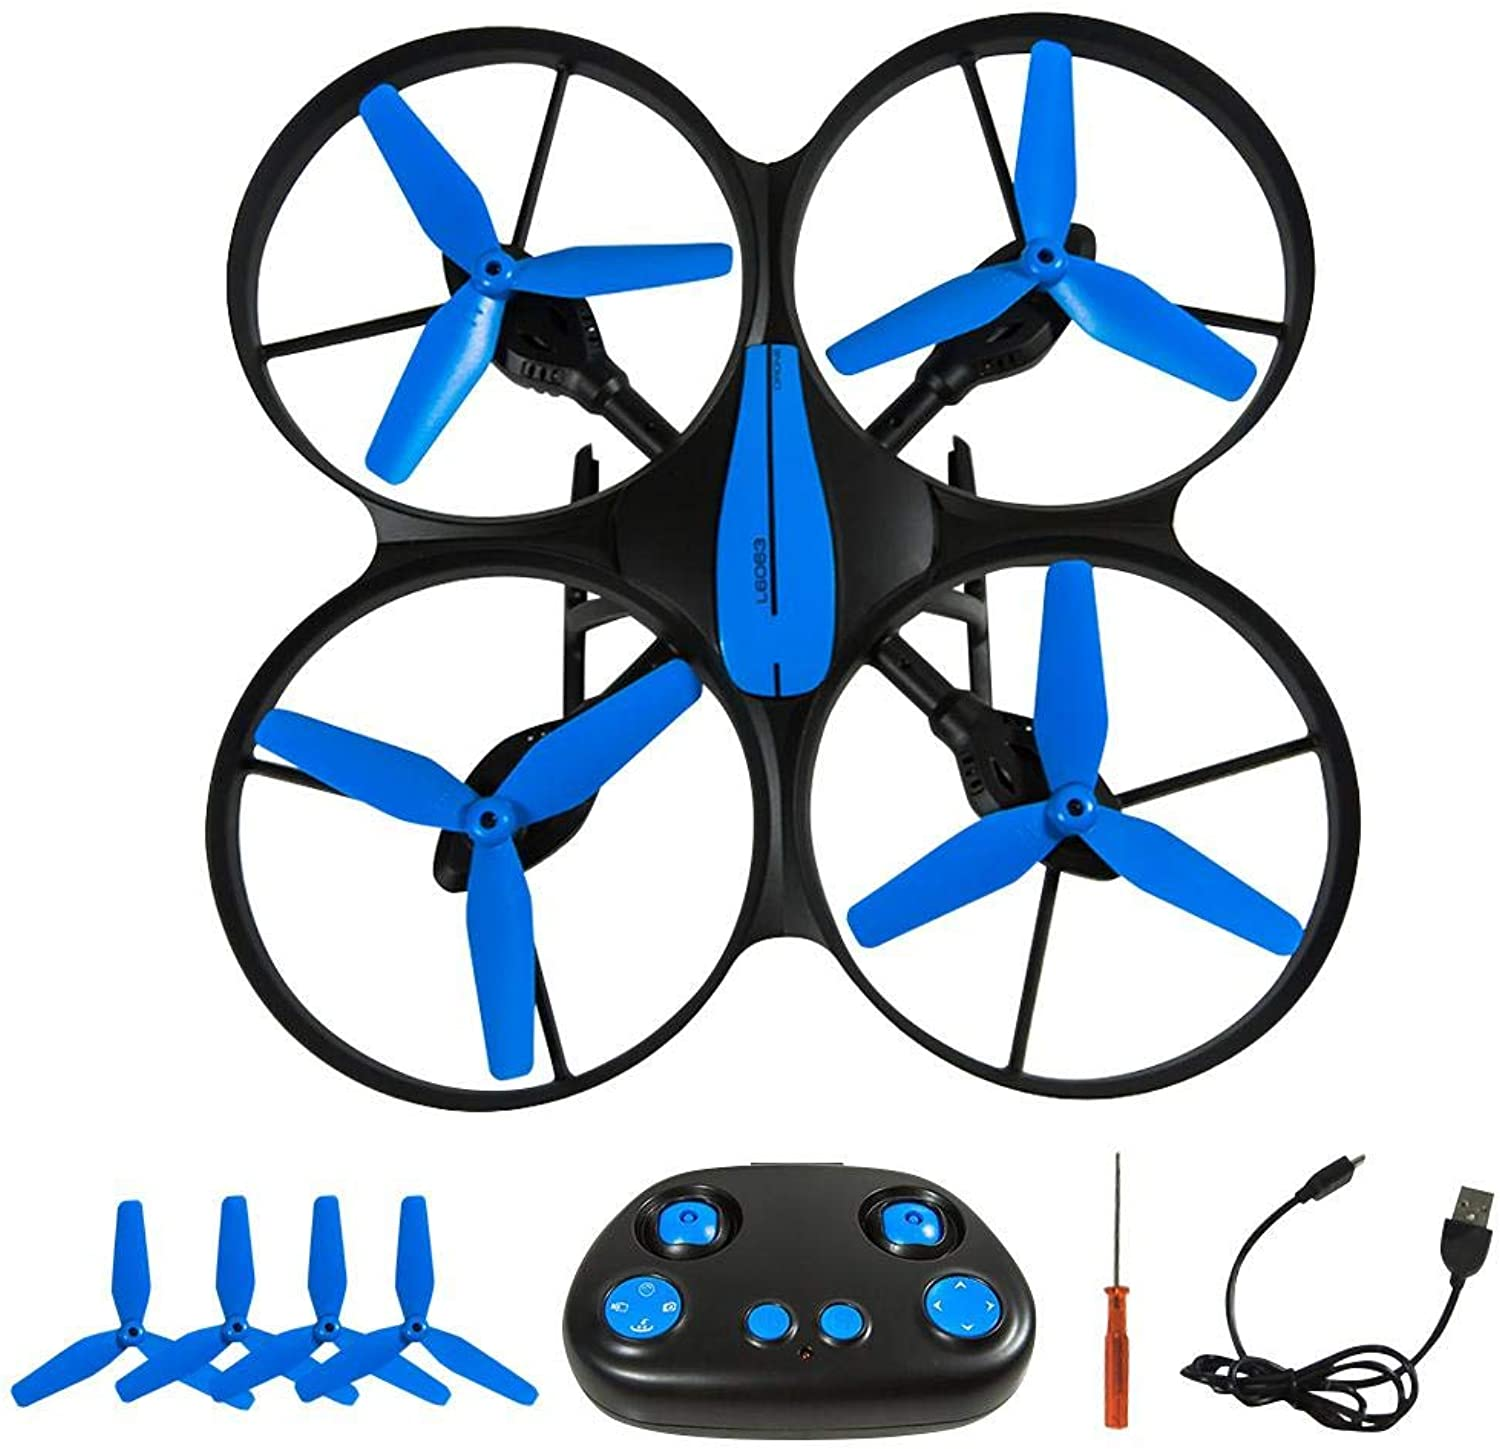 Ksruee RC Fouraxis Drone,Long Battery Life Folding Aerial Photo WiFi Image Transmission Remote Control Aircraft,with Builtin Battery.